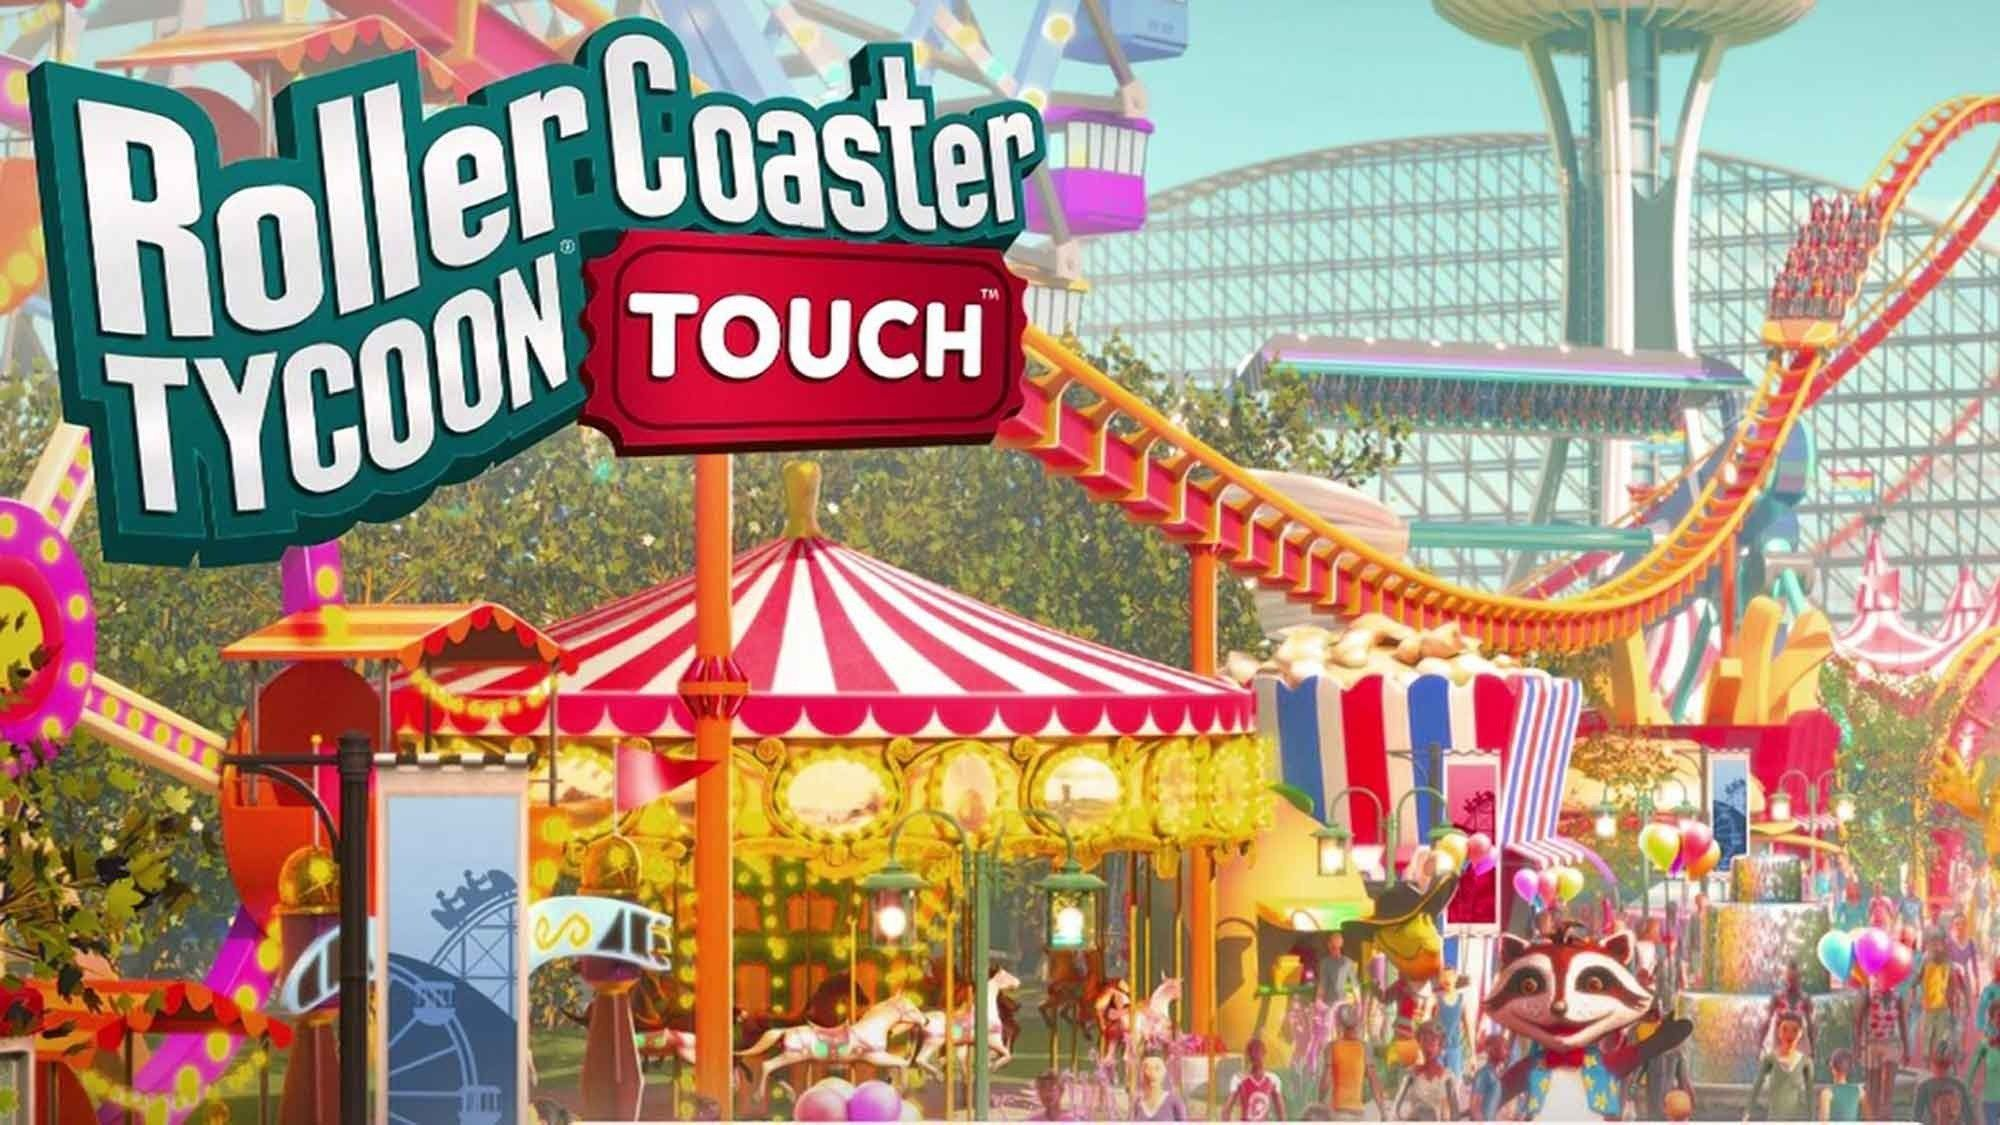 RollerCoaster Tycoon Touch MOD APK 3.7.1 (Unlimited Money